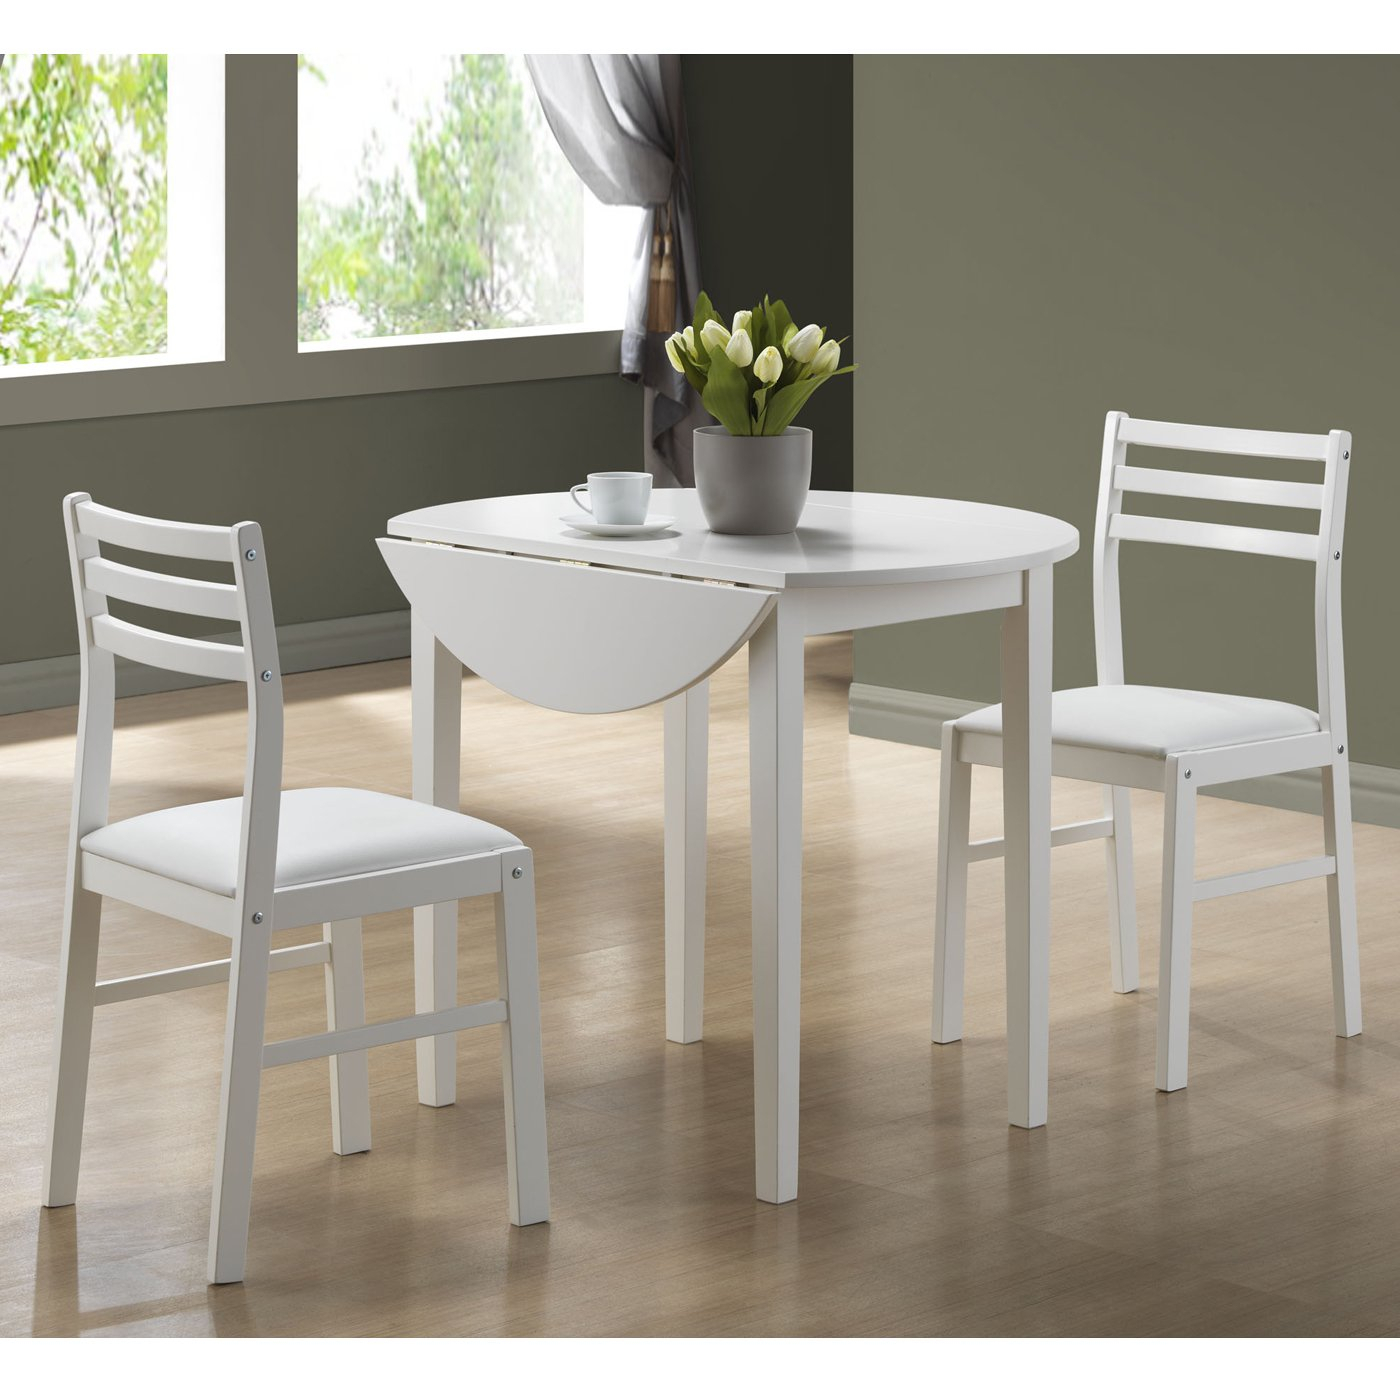 Monarch Specialties 3 Piece Dining Table Set With Regard To Most Recent 3 Piece Dining Sets (View 17 of 20)